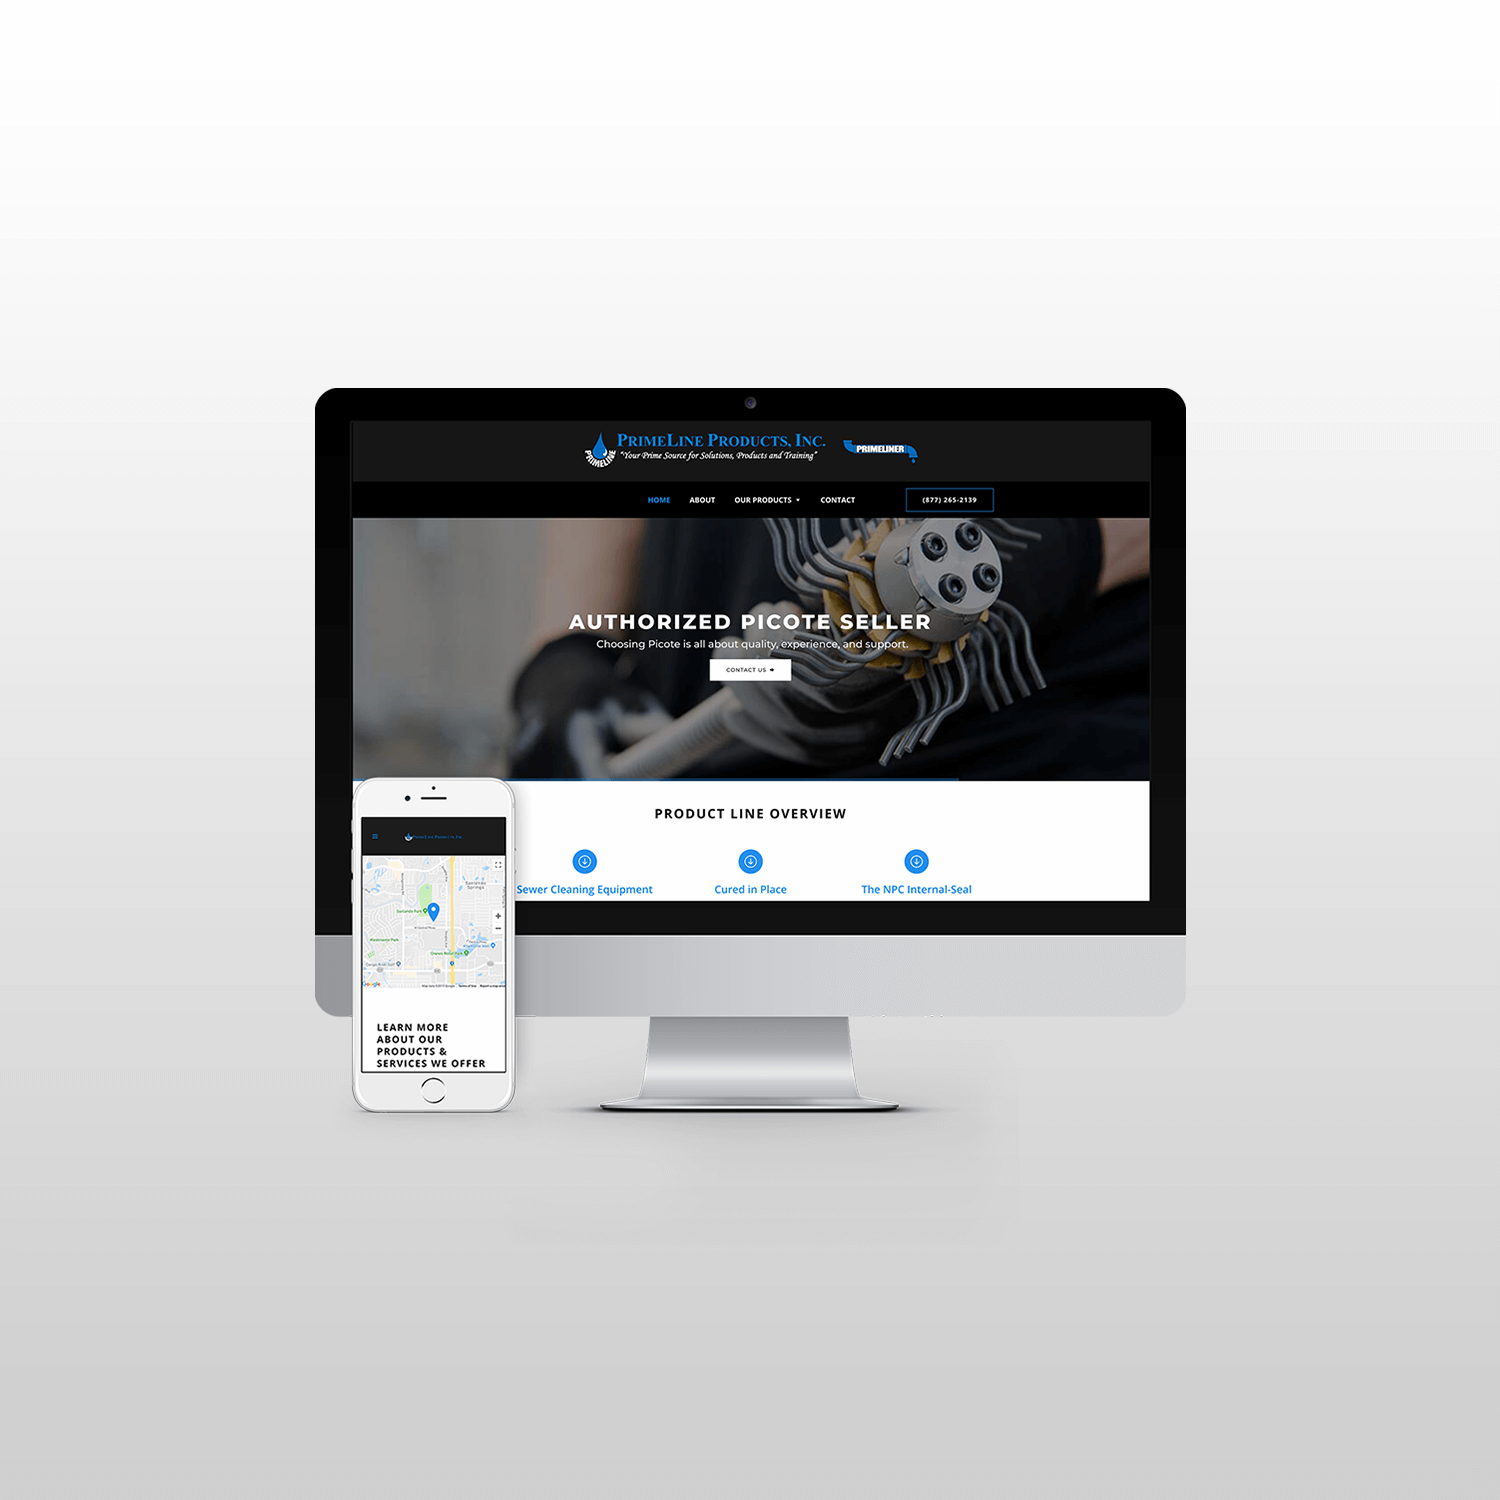 Primeline Products Website Design itsjtaM